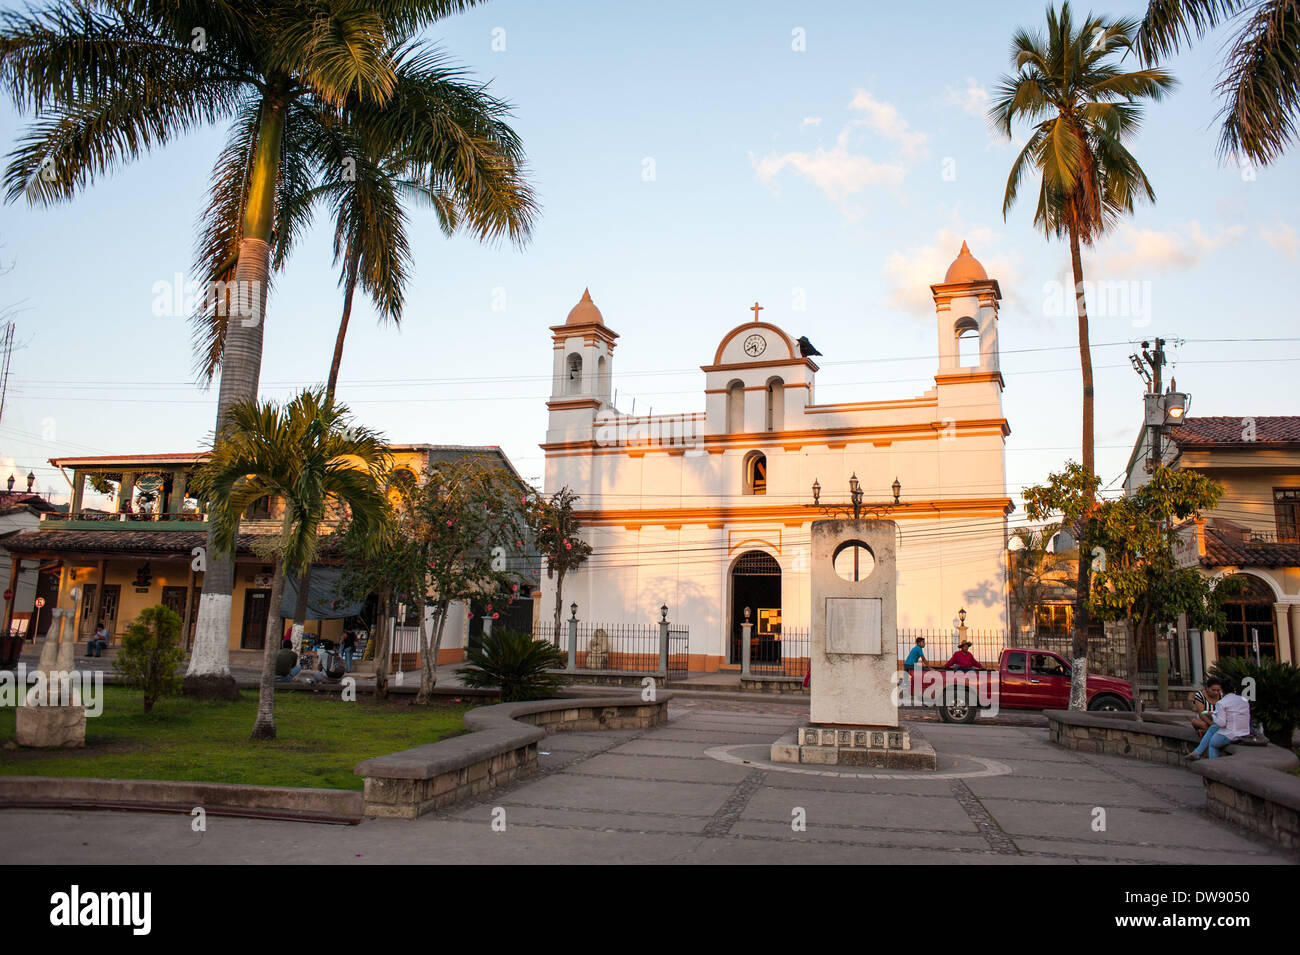 A sunset view of Parque Central in the town of Copán Ruinas, Honduras. - Stock Image